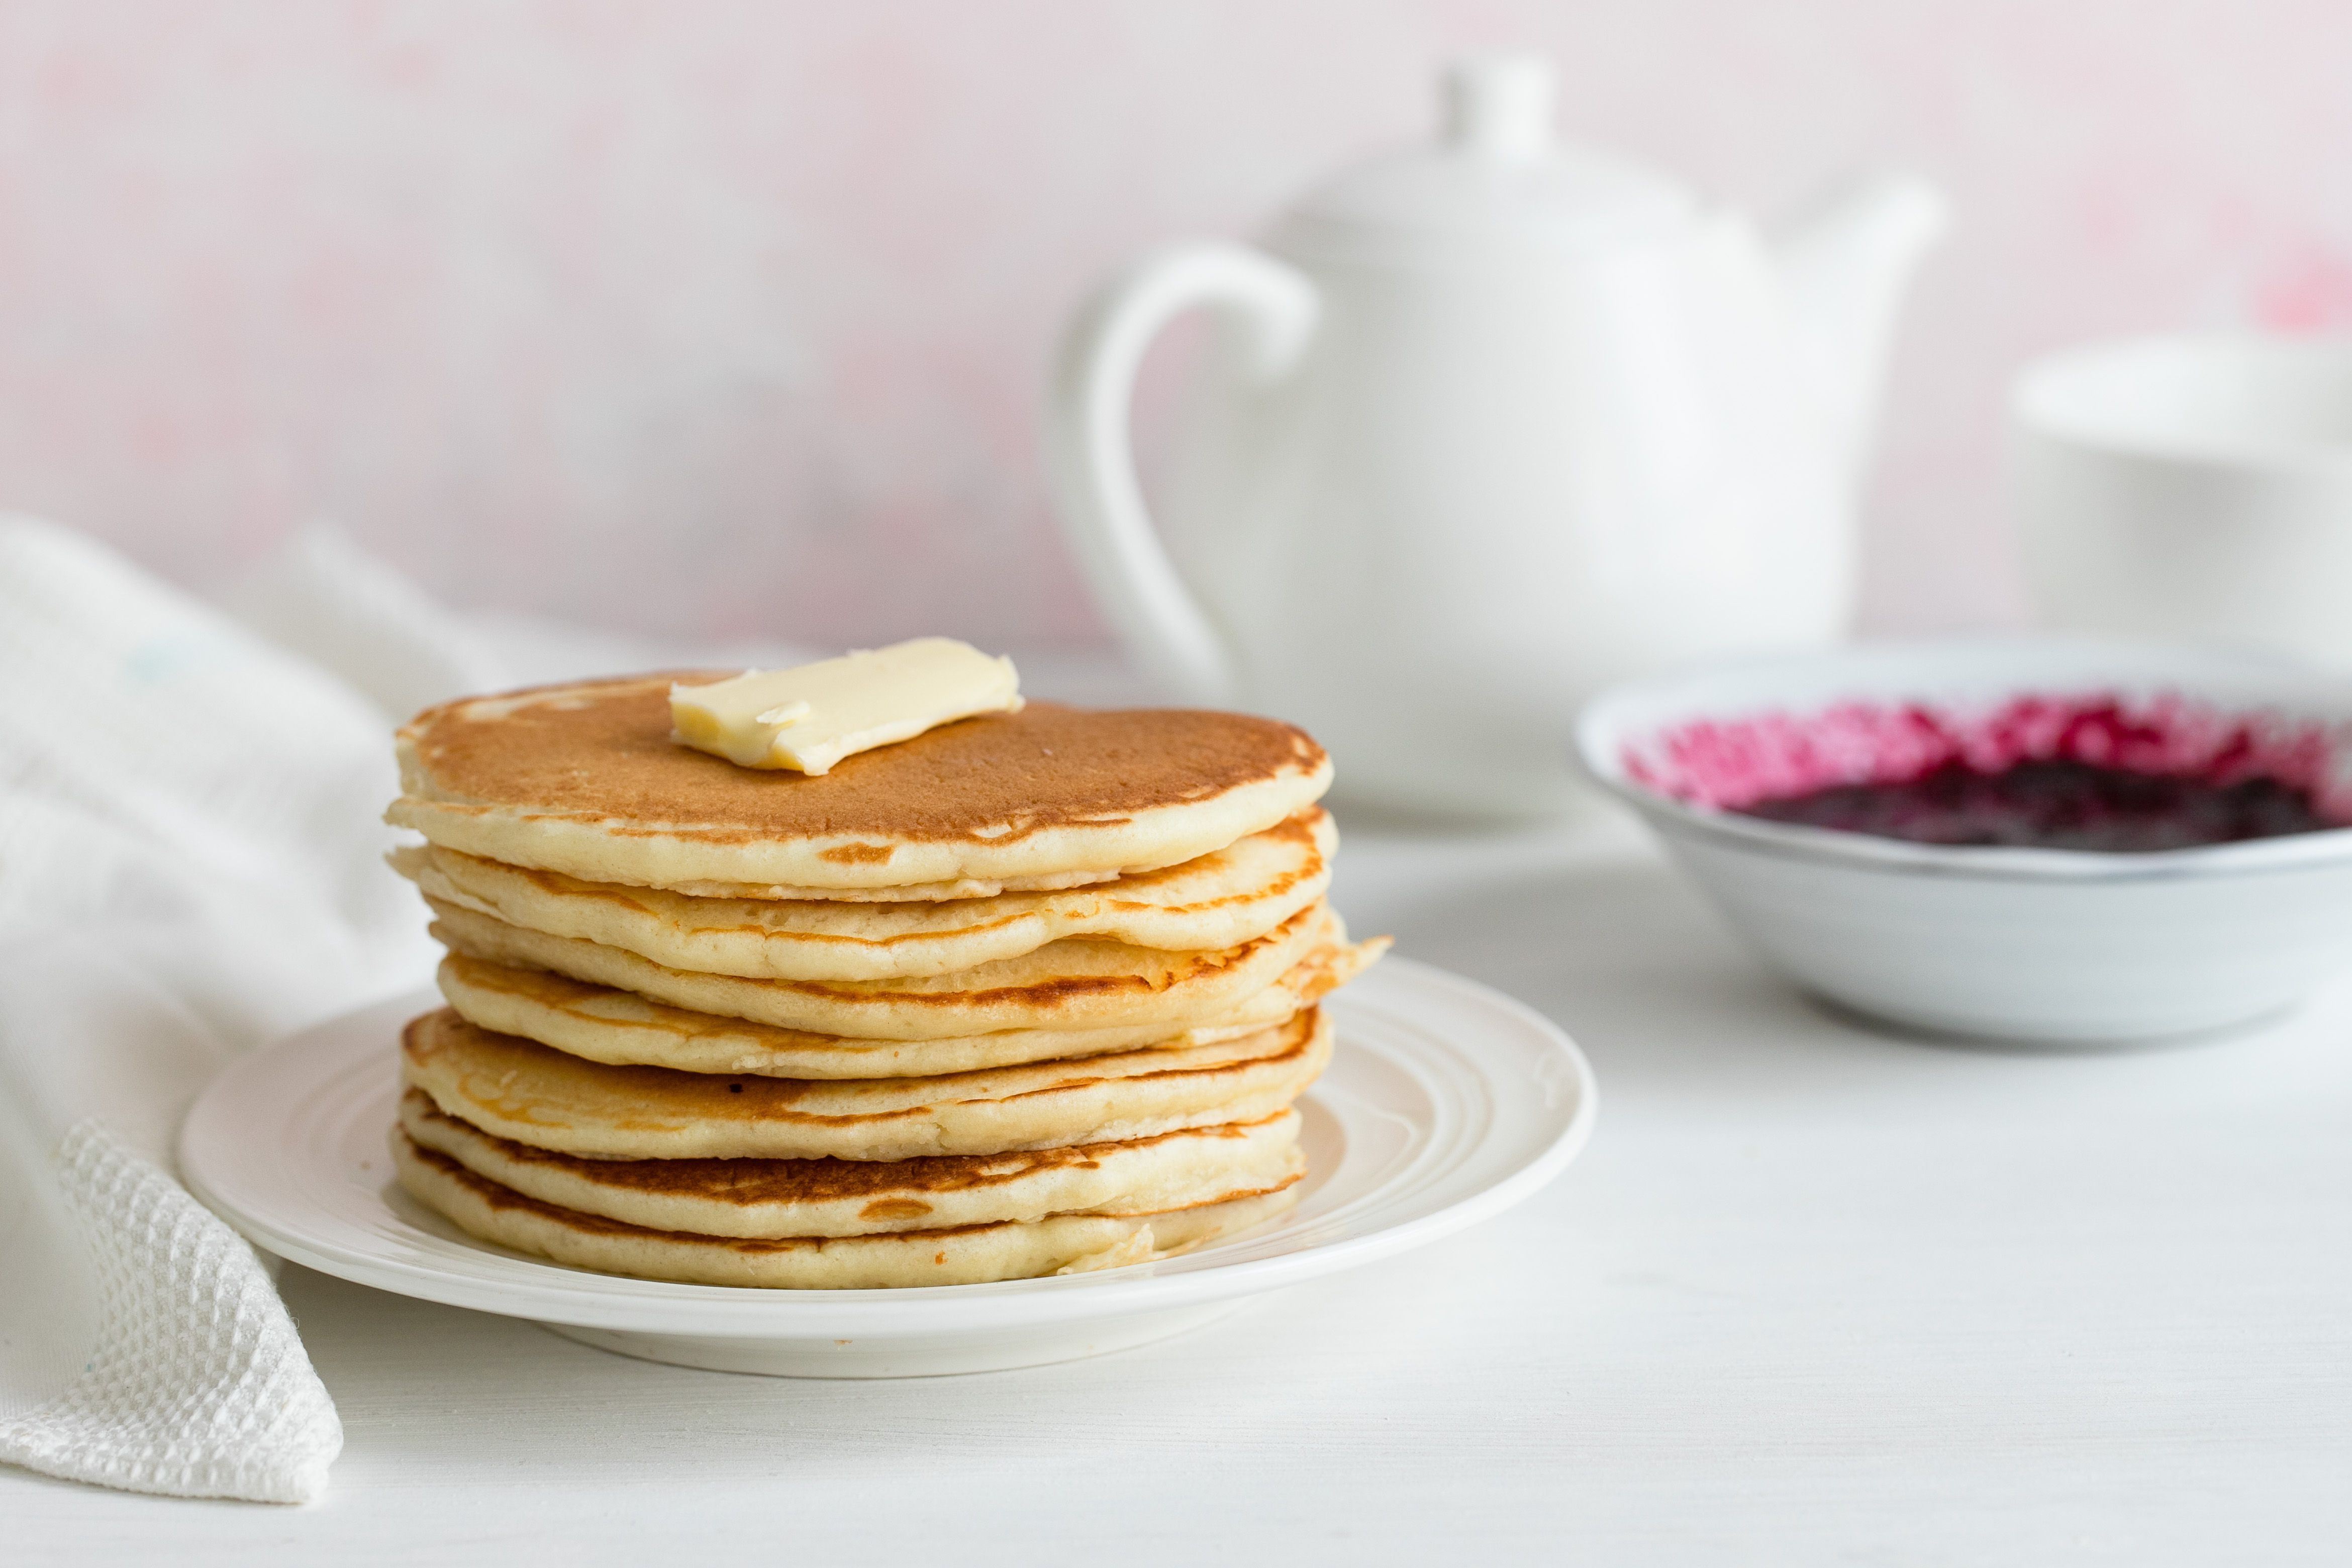 Simple Homemade Pancakes With Variations